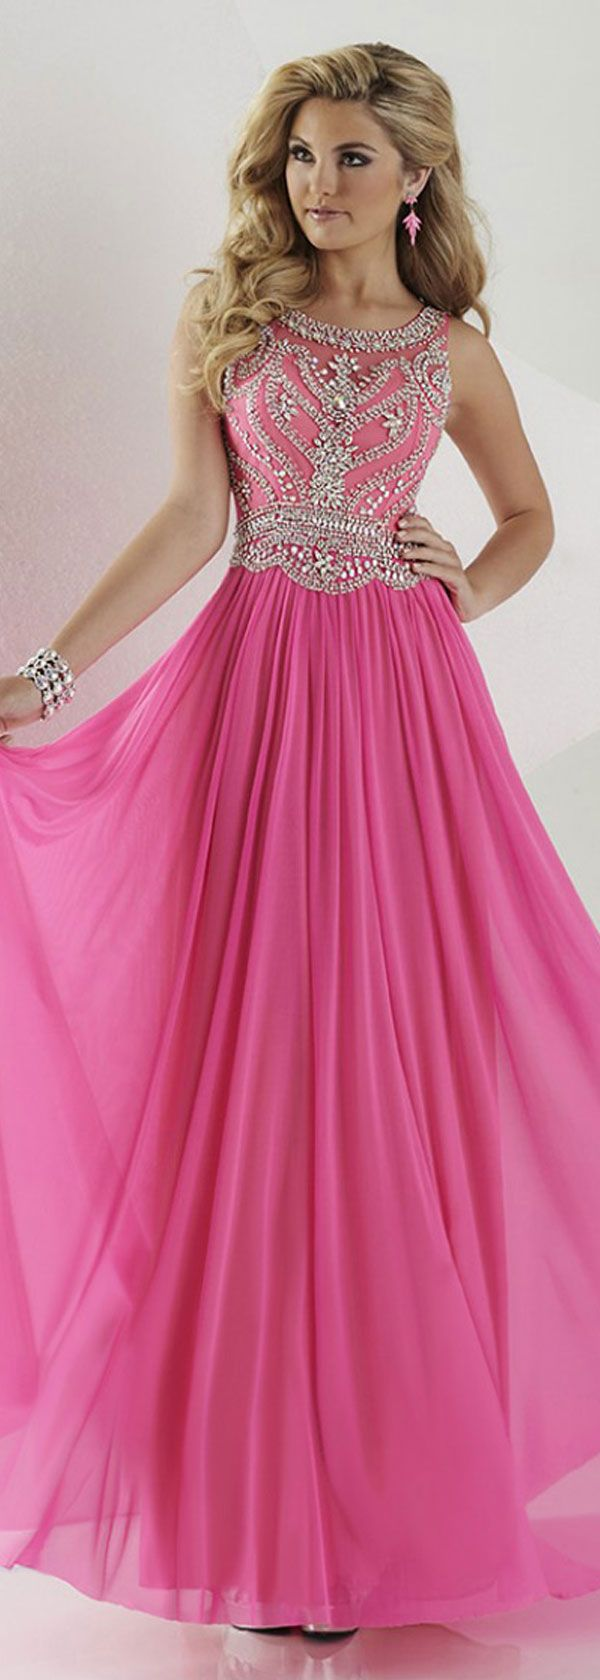 Fashionable Chiffon Scoop Neckline A-Line Prom Dresses With Beads ...